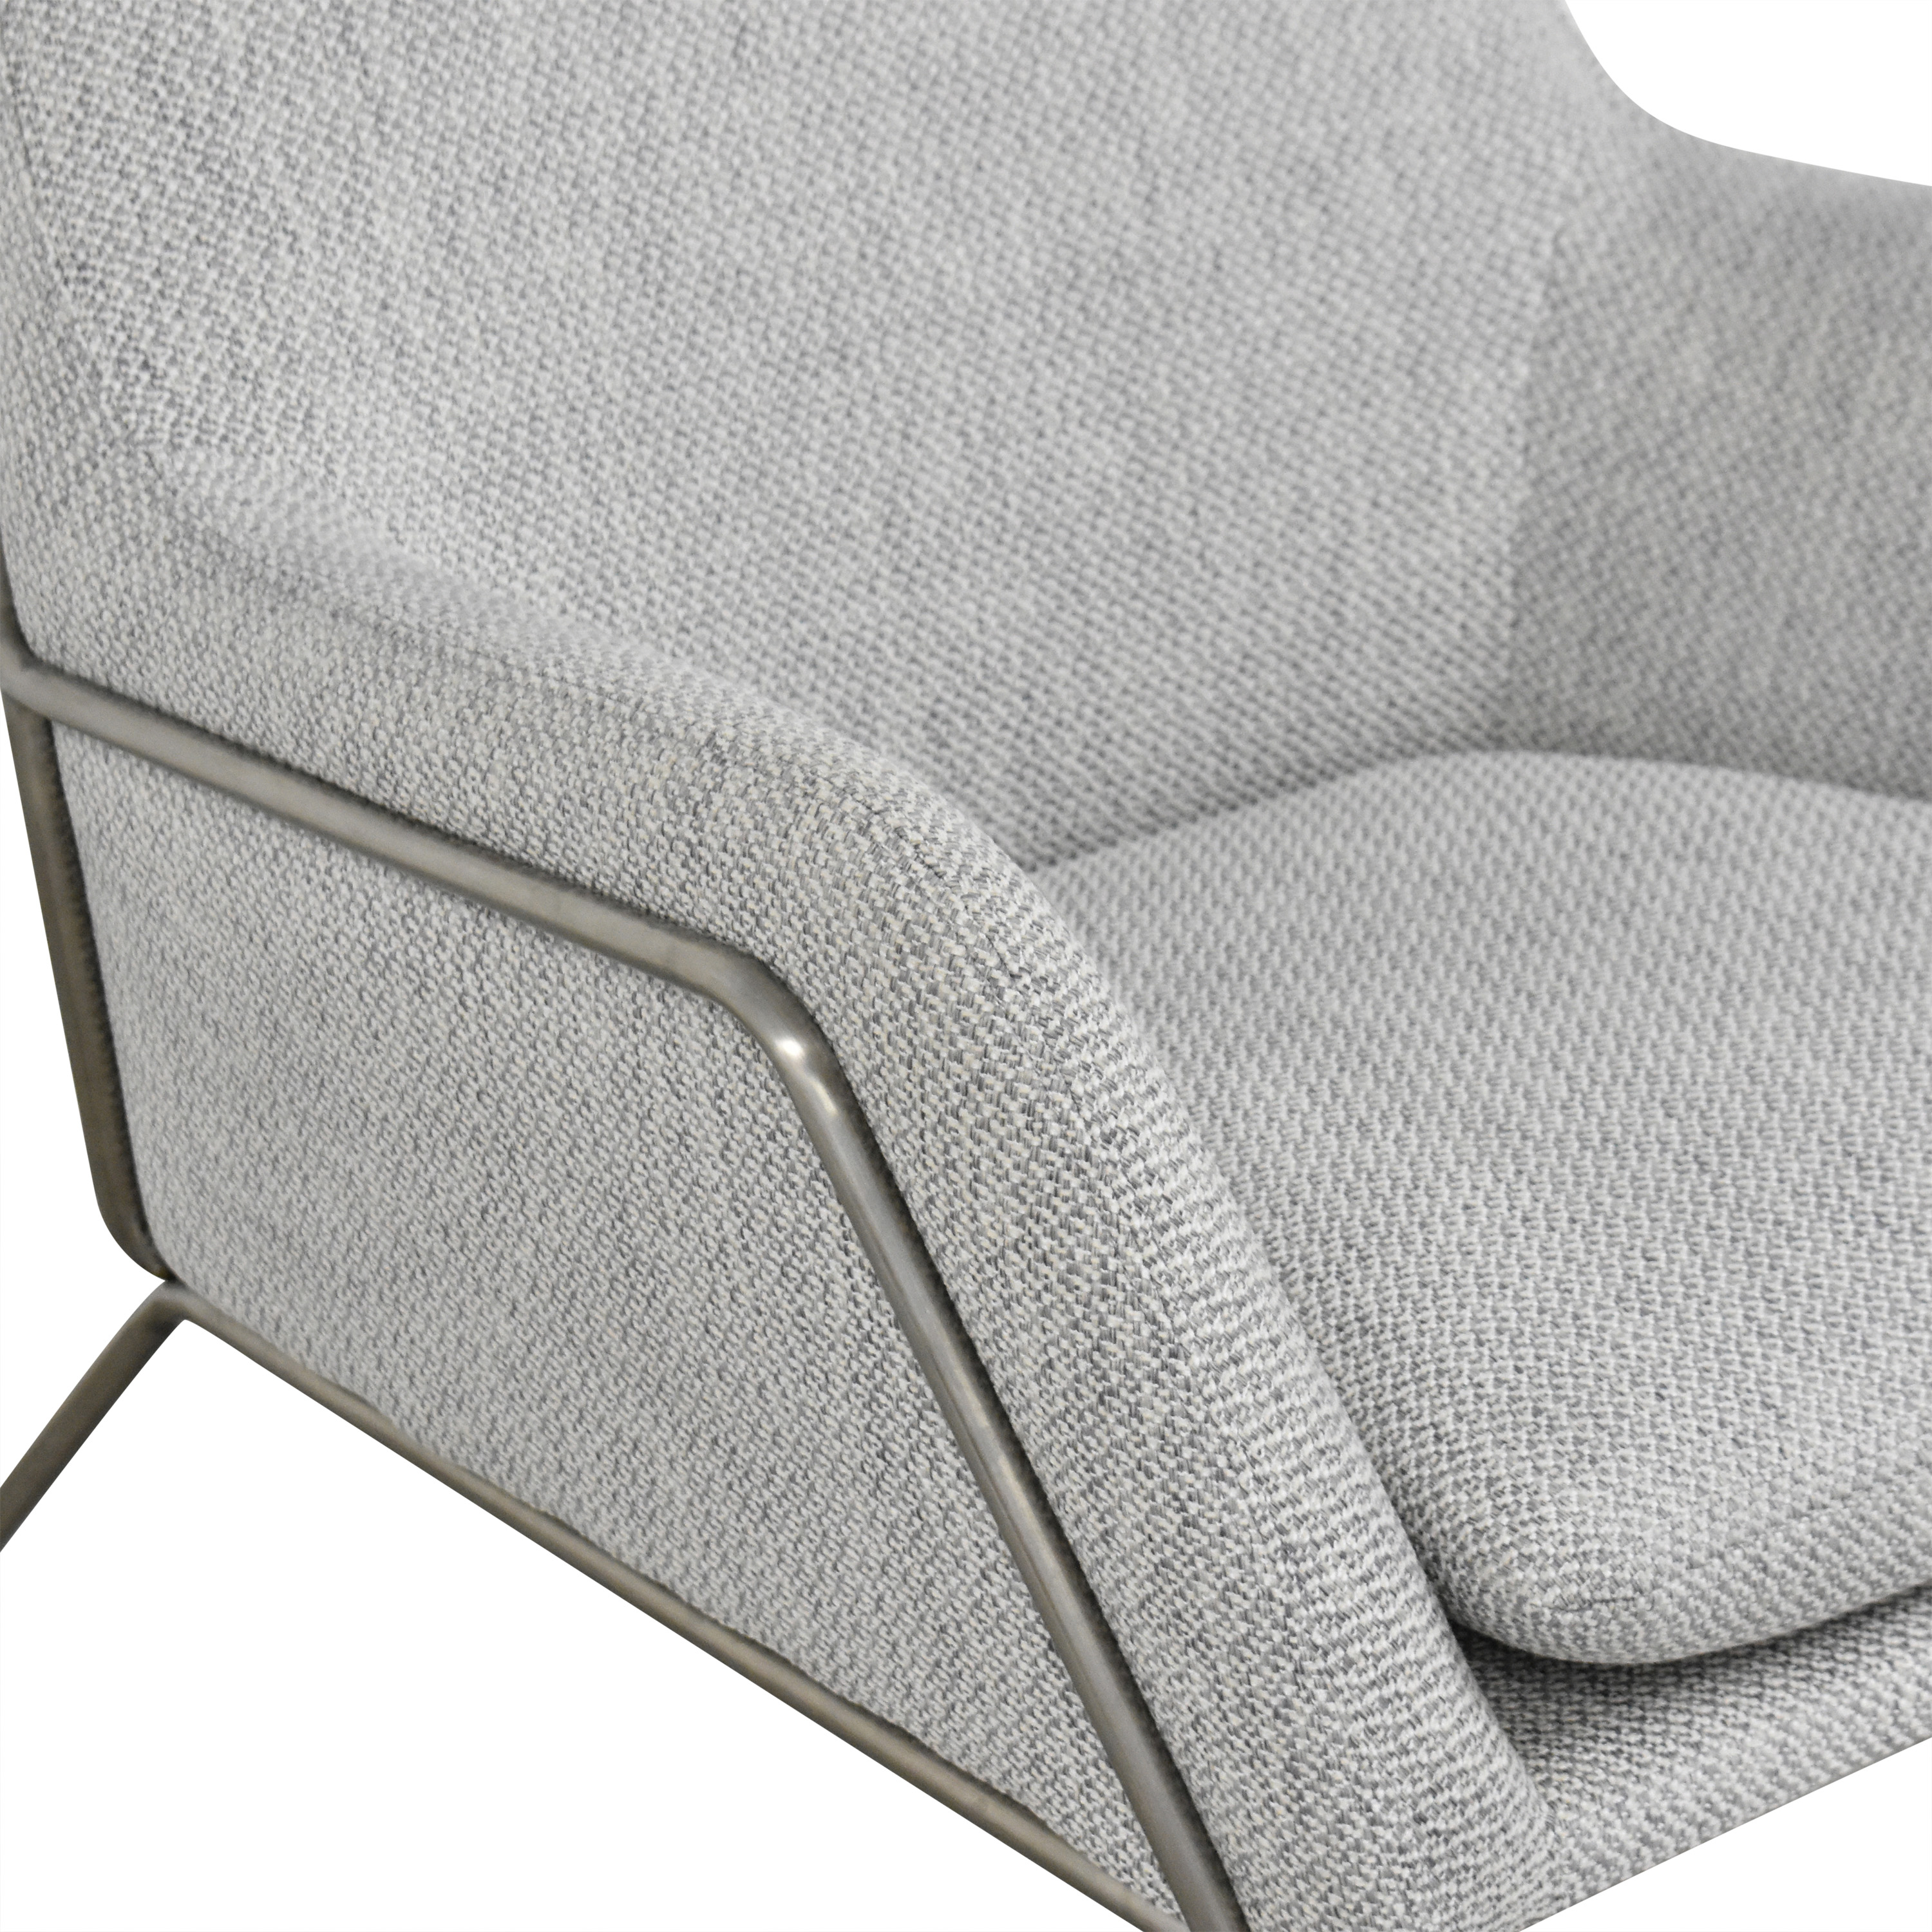 buy Article Article Forma Chair online